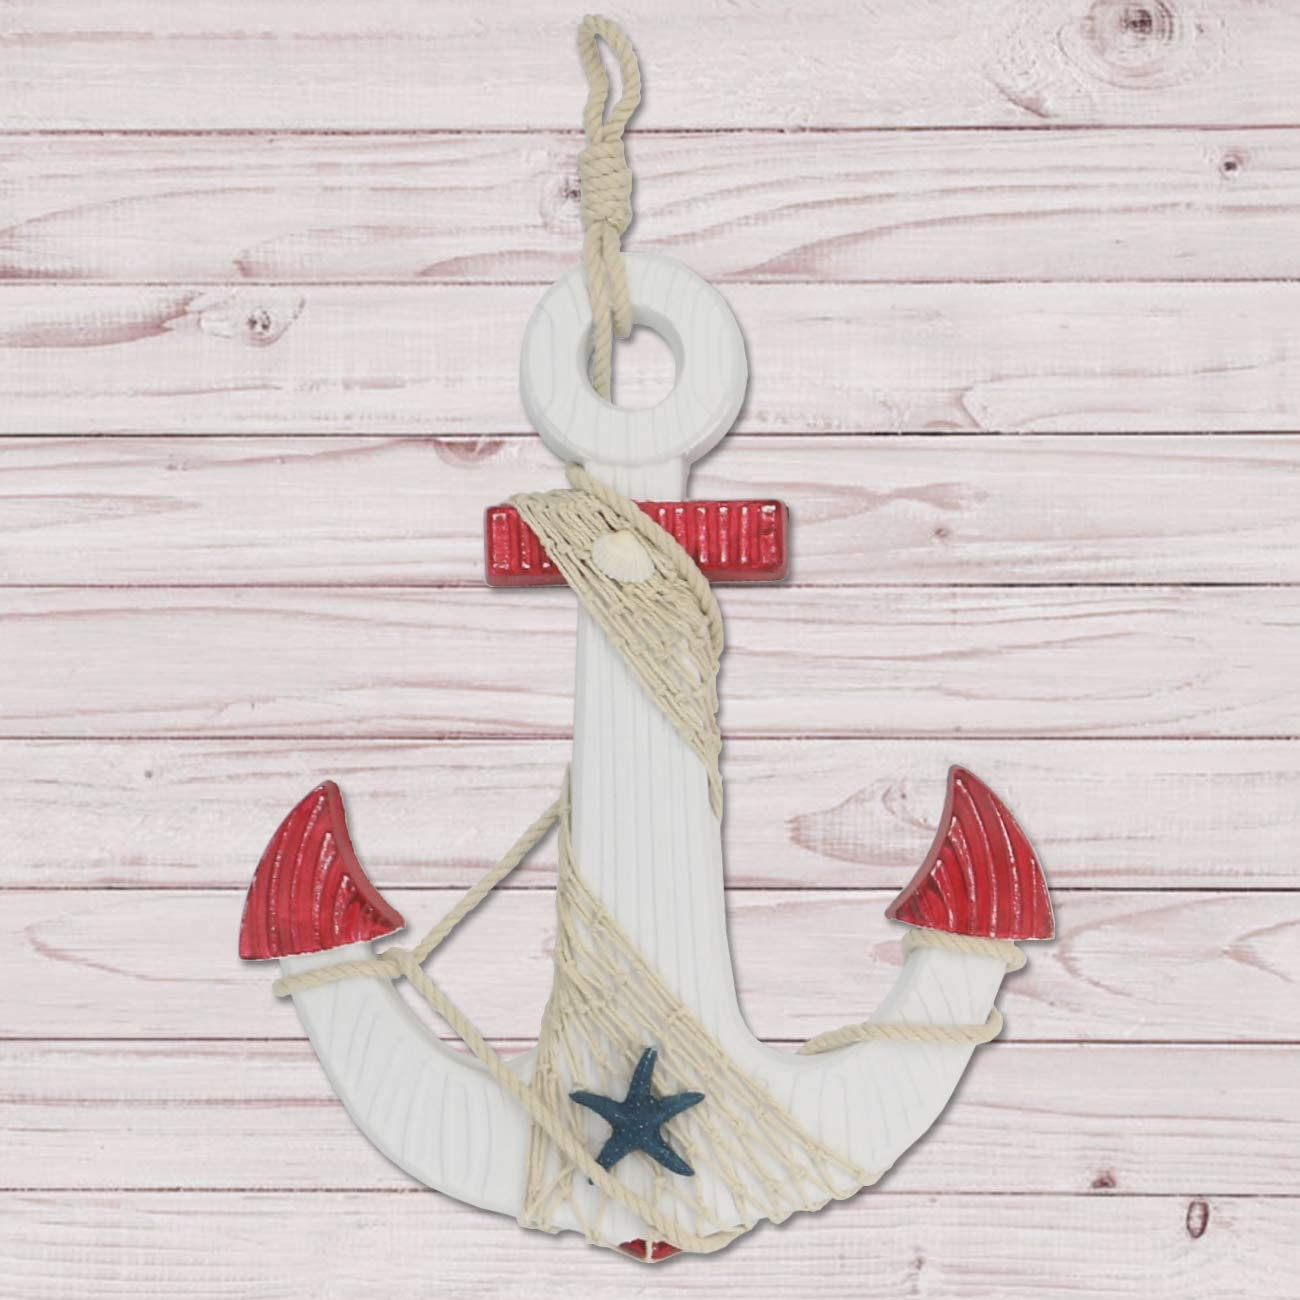 Sunnyglade Large Anchor Wall Decor Wall Hanging Ornament Wooden Nautical Anchor with Rope (Red)